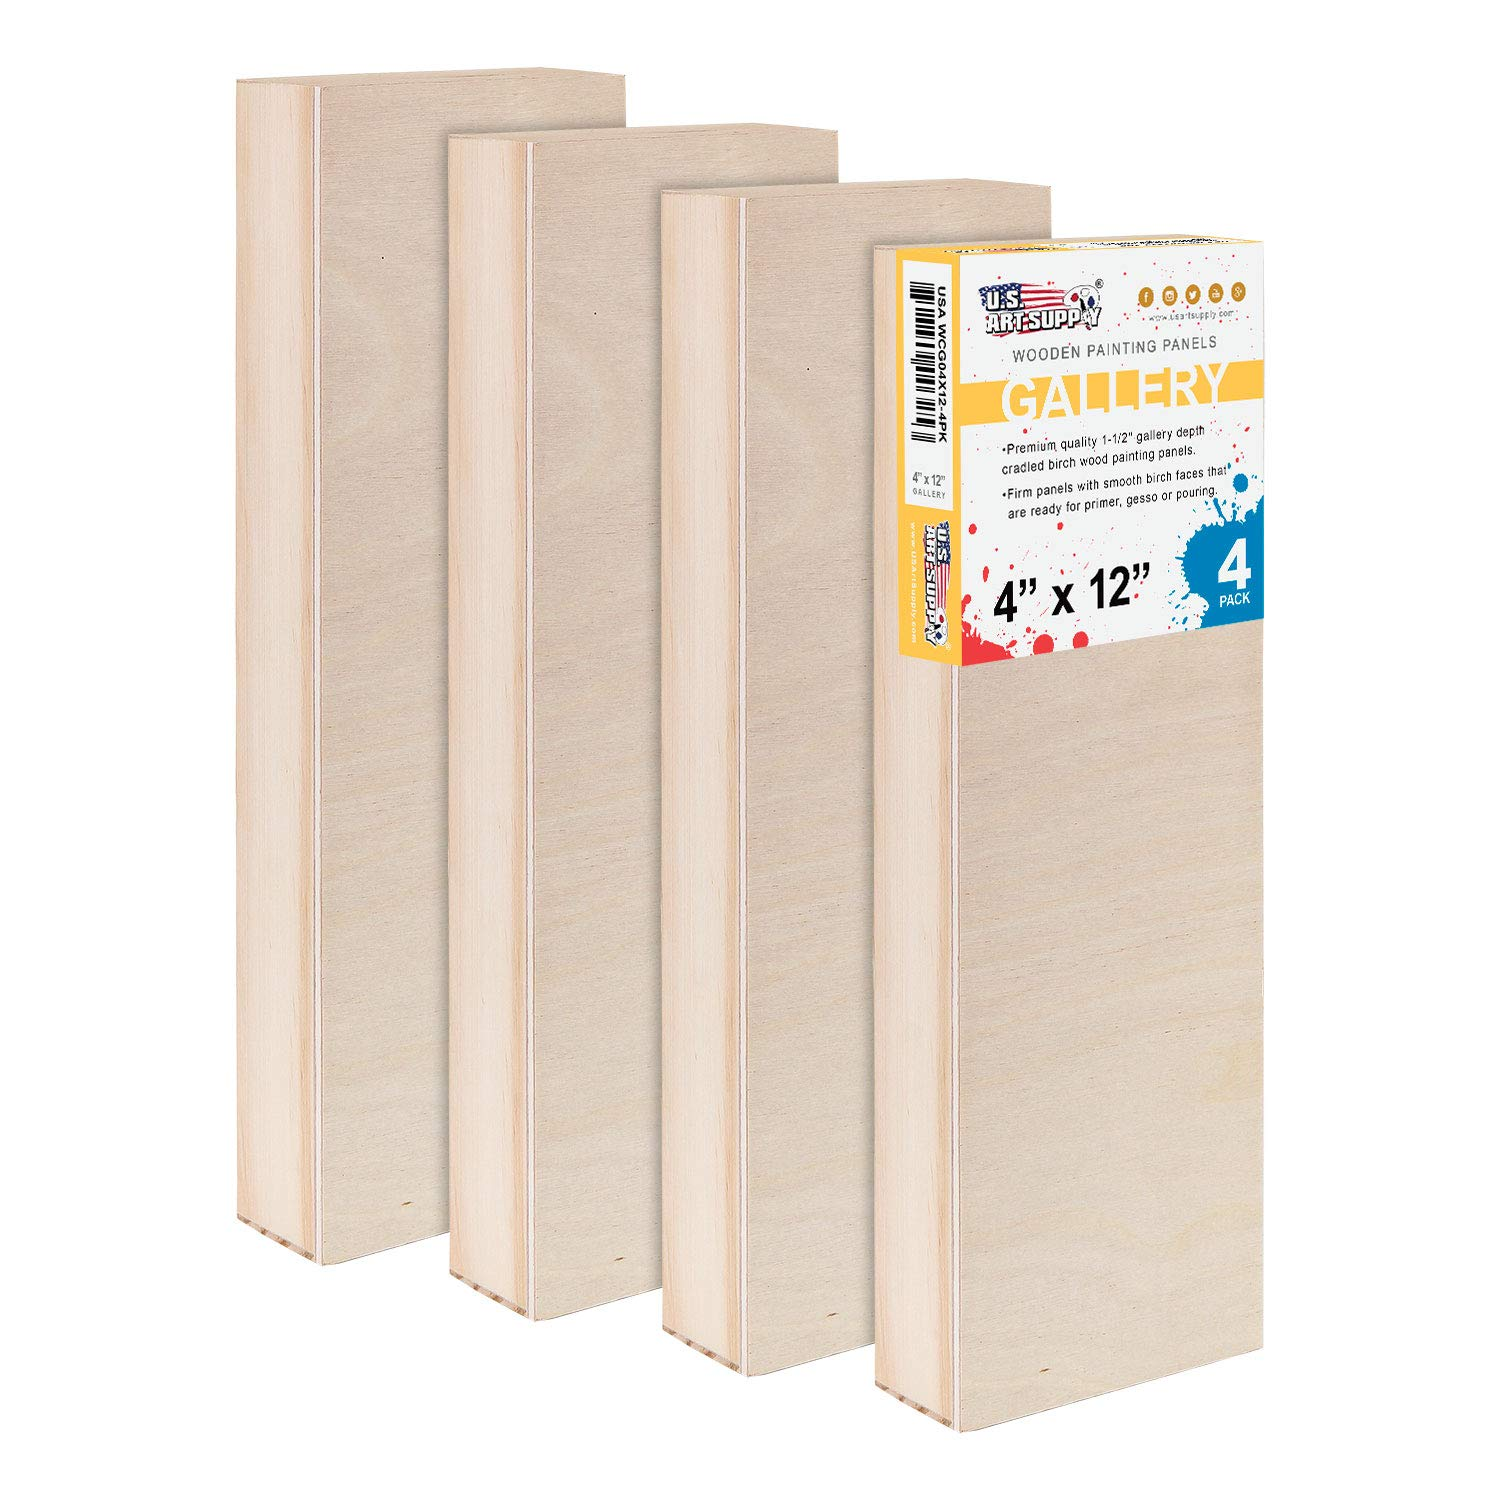 U.S. Art Supply 4'' x 12'' Birch Wood Paint Pouring Panel Boards, Gallery 1-1/2'' Deep Cradle (Pack of 4) - Artist Depth Wooden Wall Canvases - Painting Mixed-Media Craft, Acrylic, Oil, Encaustic by US Art Supply